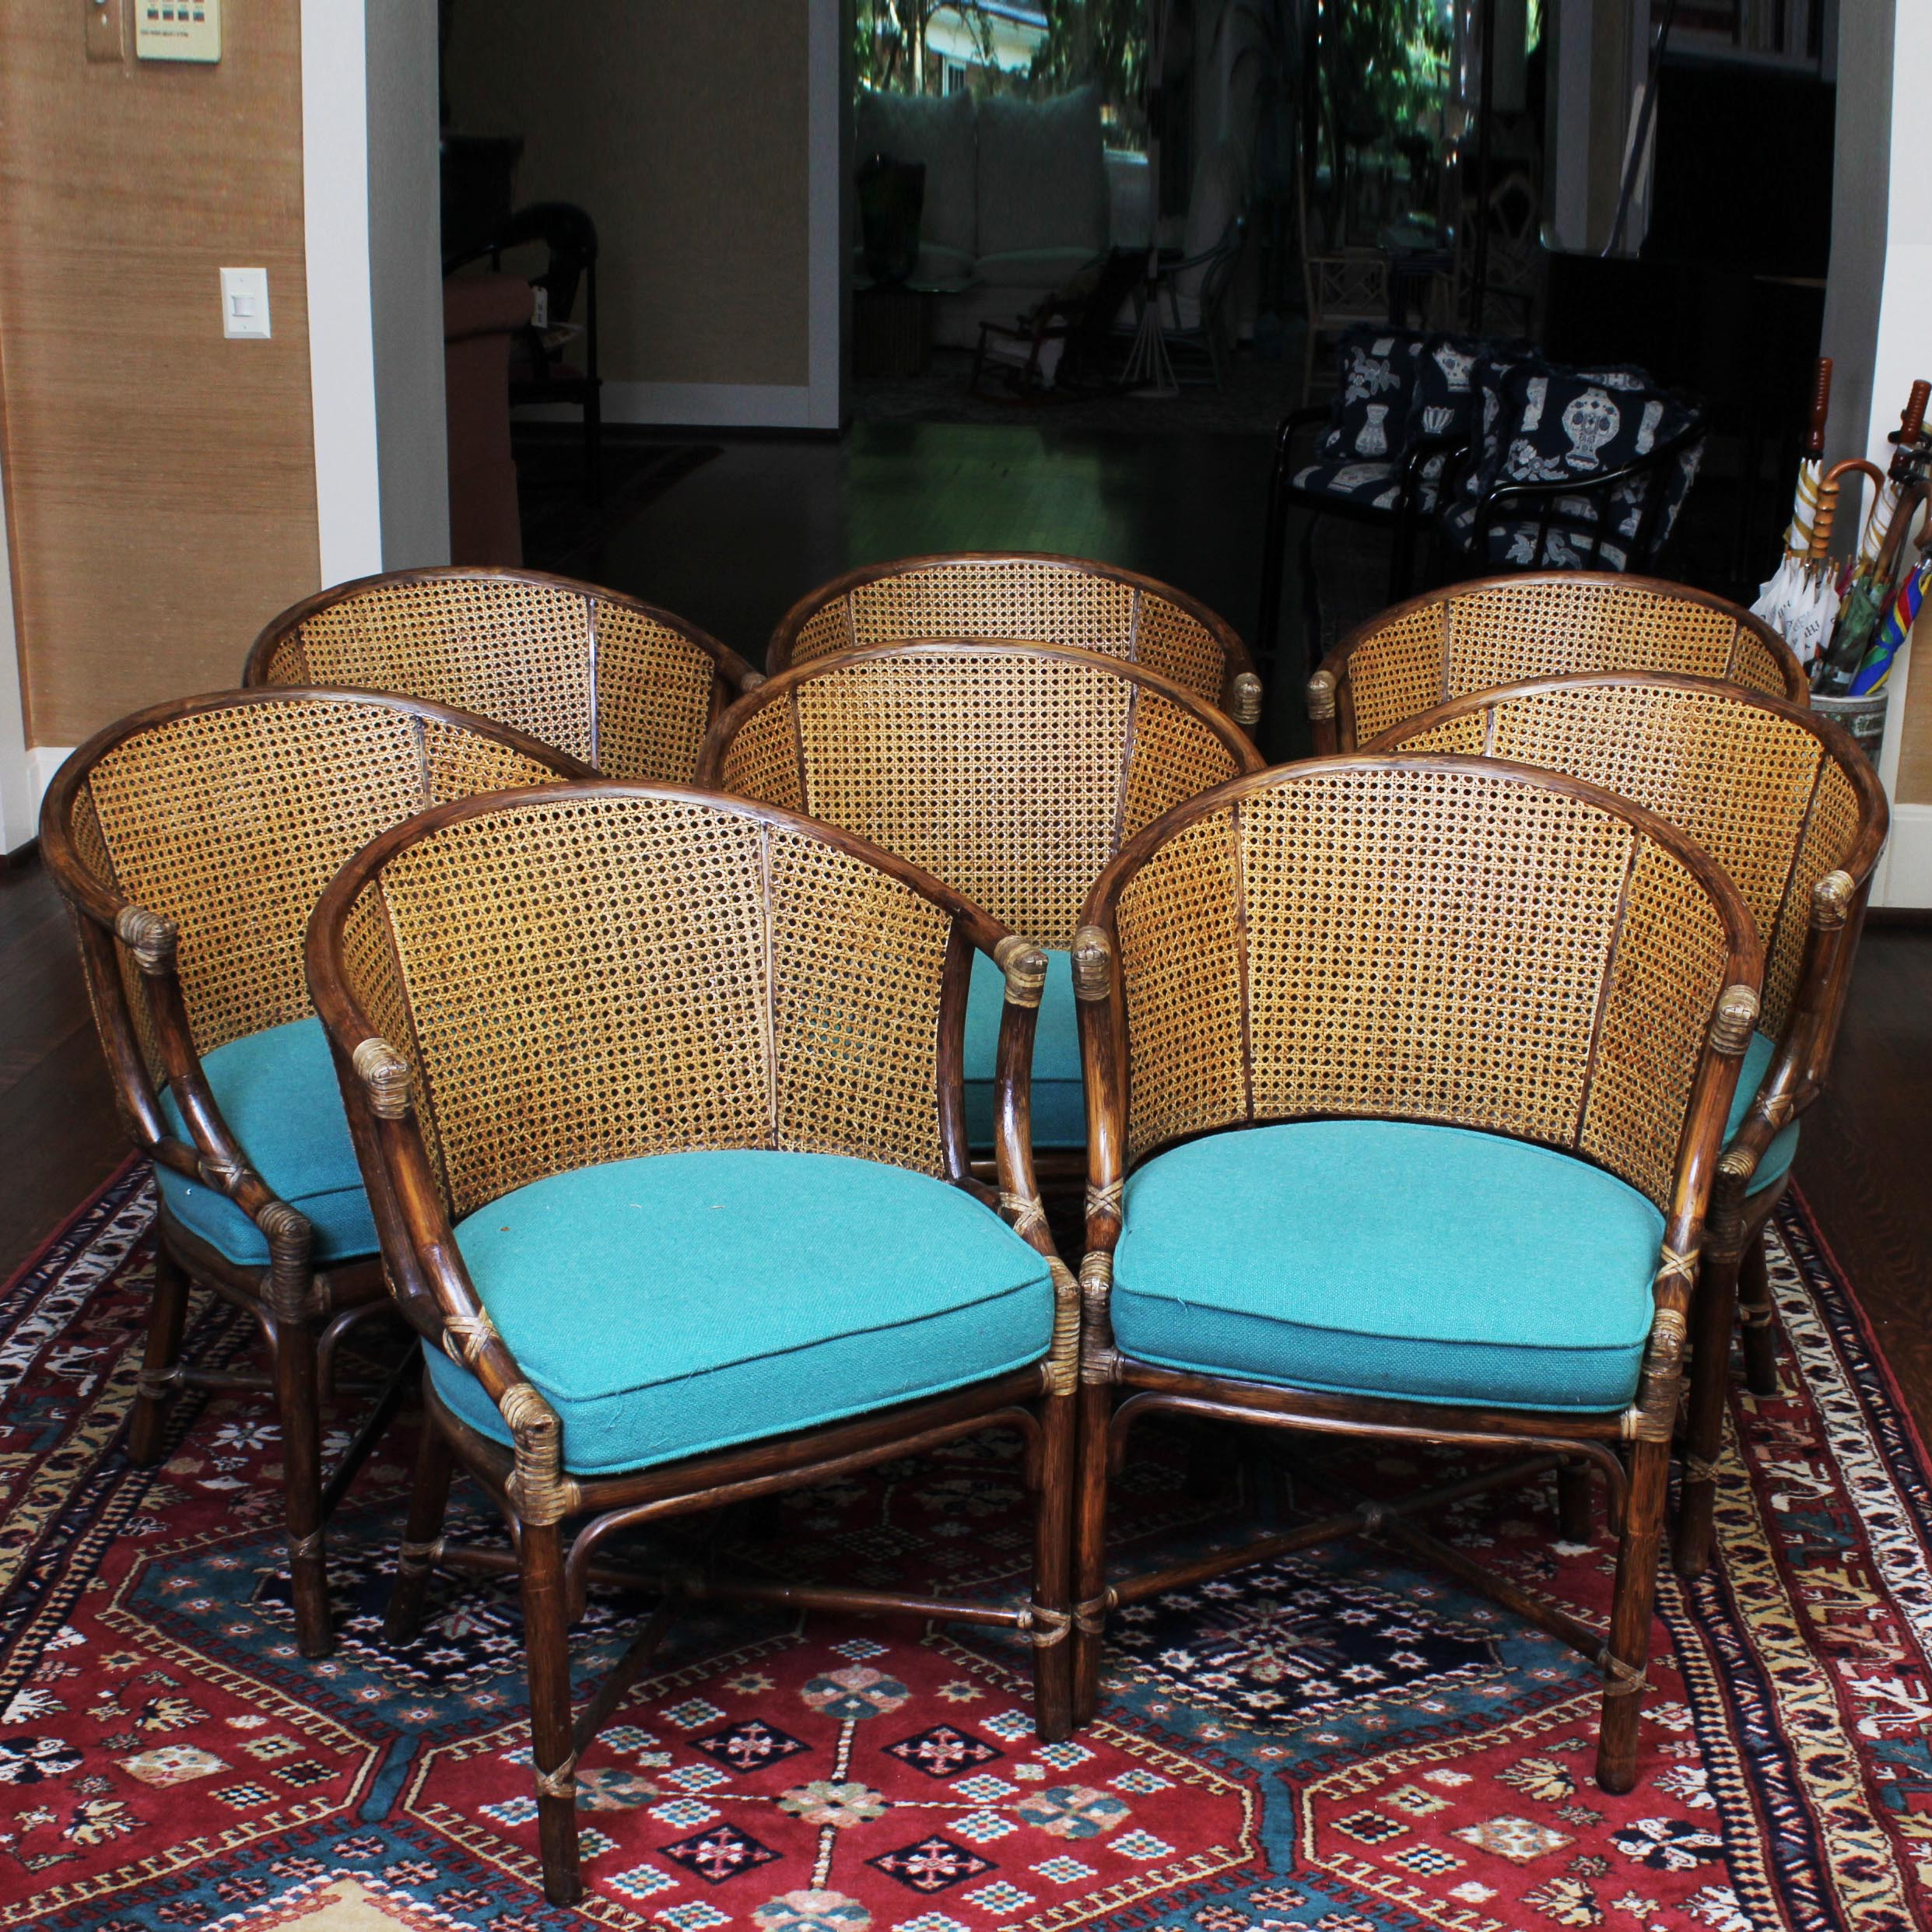 cane back chairs antique desk chair at target vintage mcguire of san francisco bamboo and